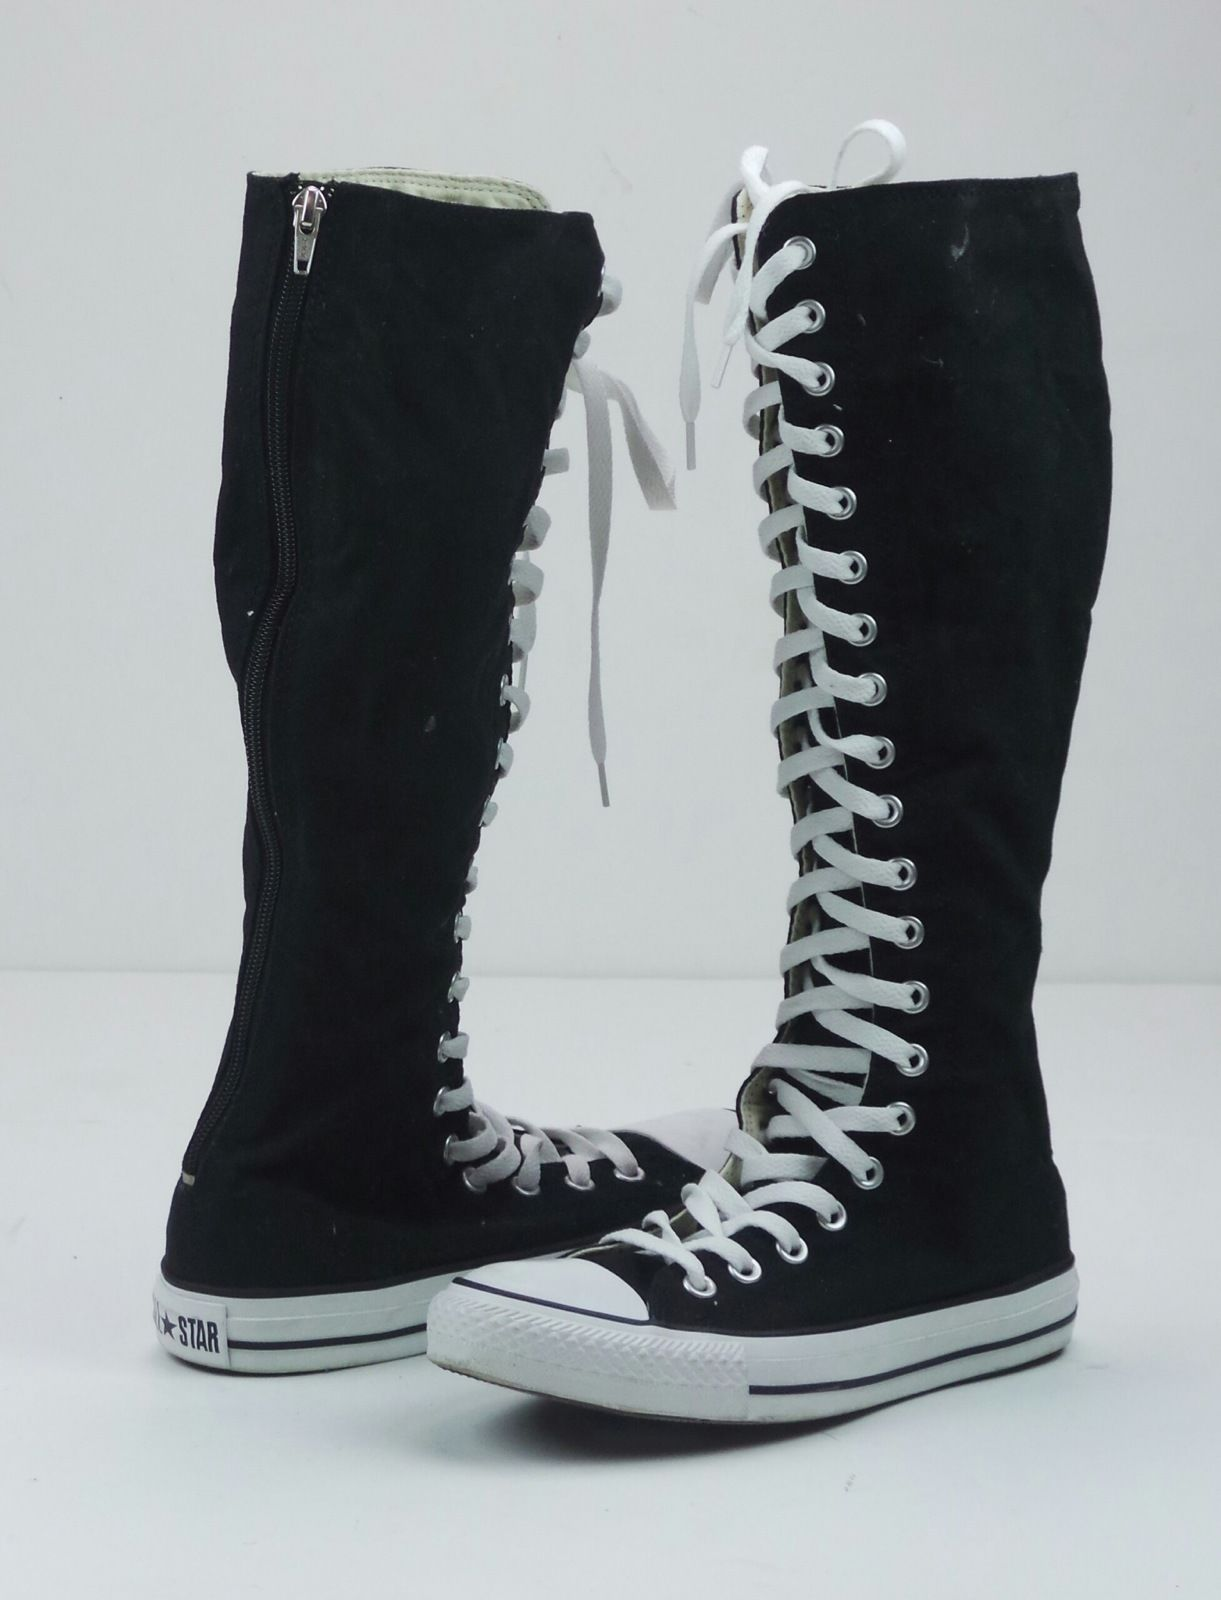 3474bf0f685d Converse Chuck Taylor Hi Canvas Long Lace Zip Up Knee High Boots Sneakers  Size 7